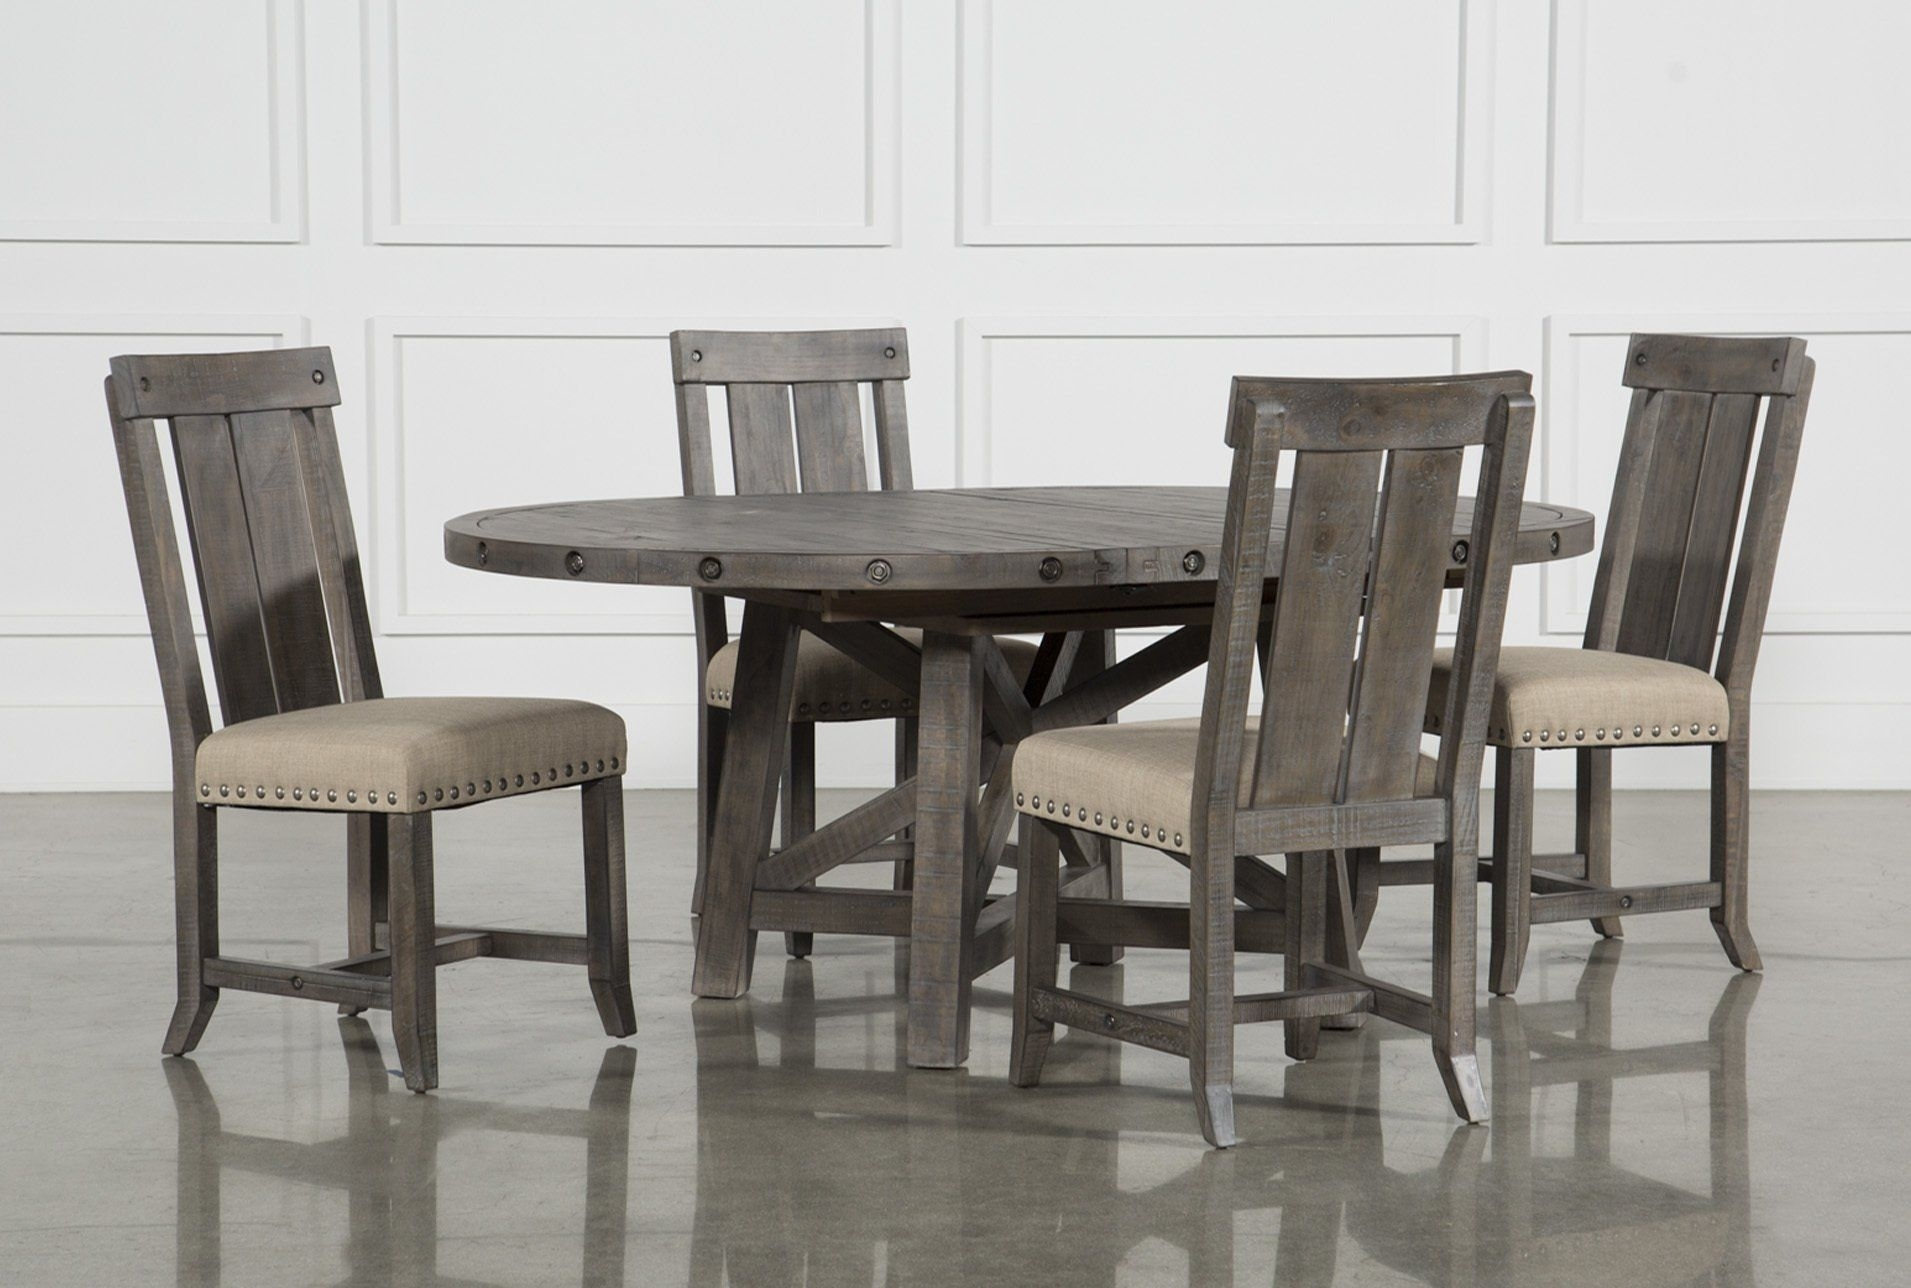 Jaxon Grey Wood Side Chairs Within Trendy Jaxon Grey 5 Piece Round Extension Dining Set W/wood Chairs (View 10 of 20)